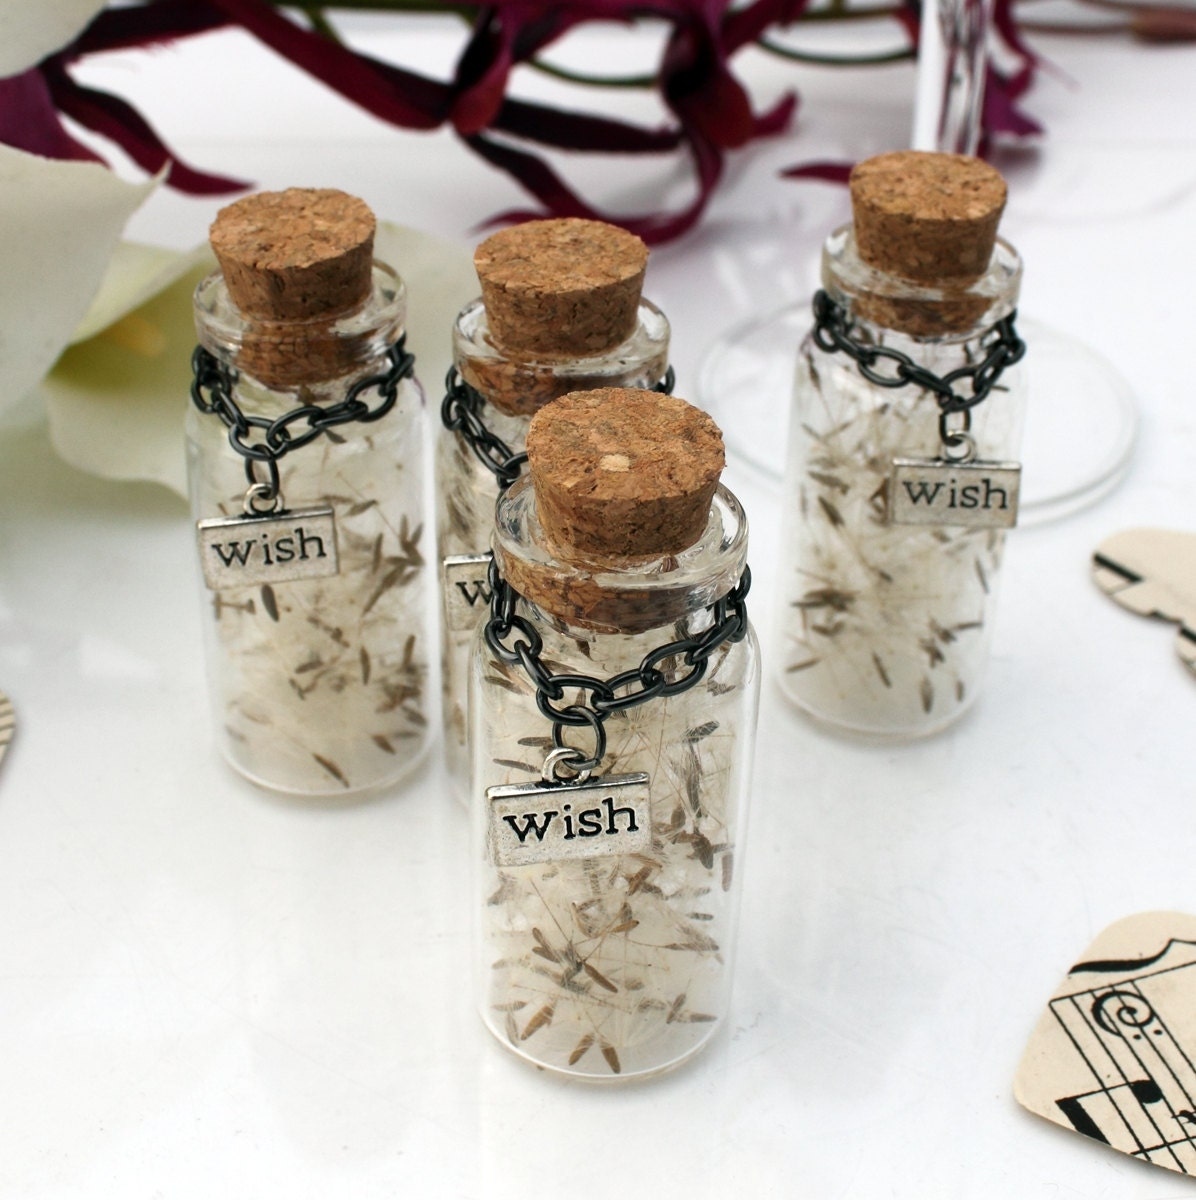 Cork Wedding Memory: 50 Dandelion Seed Glass Vial Wedding Favor Good Luck